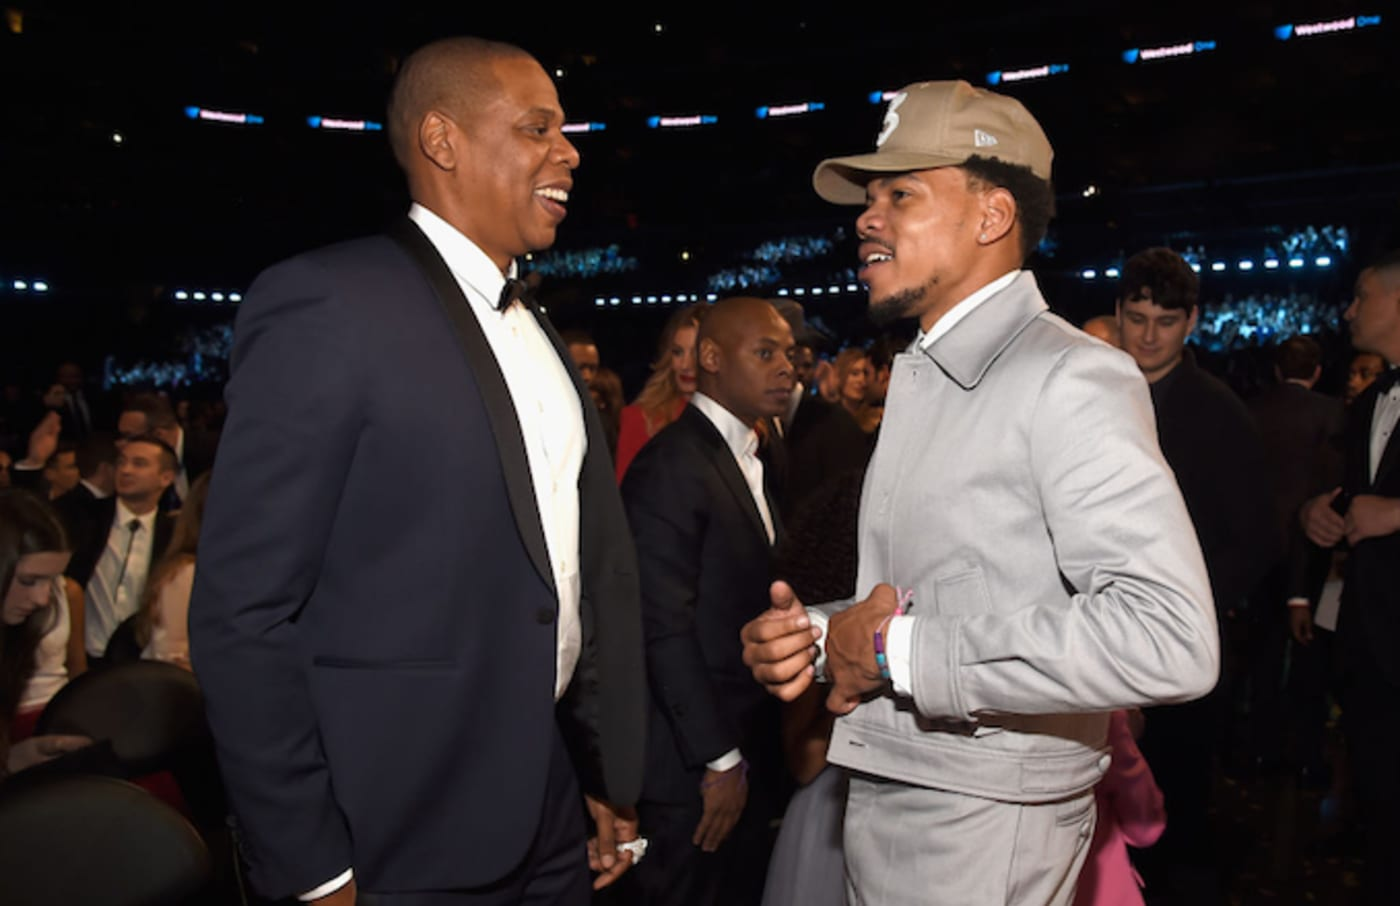 Jay Z and Chance the Rapper